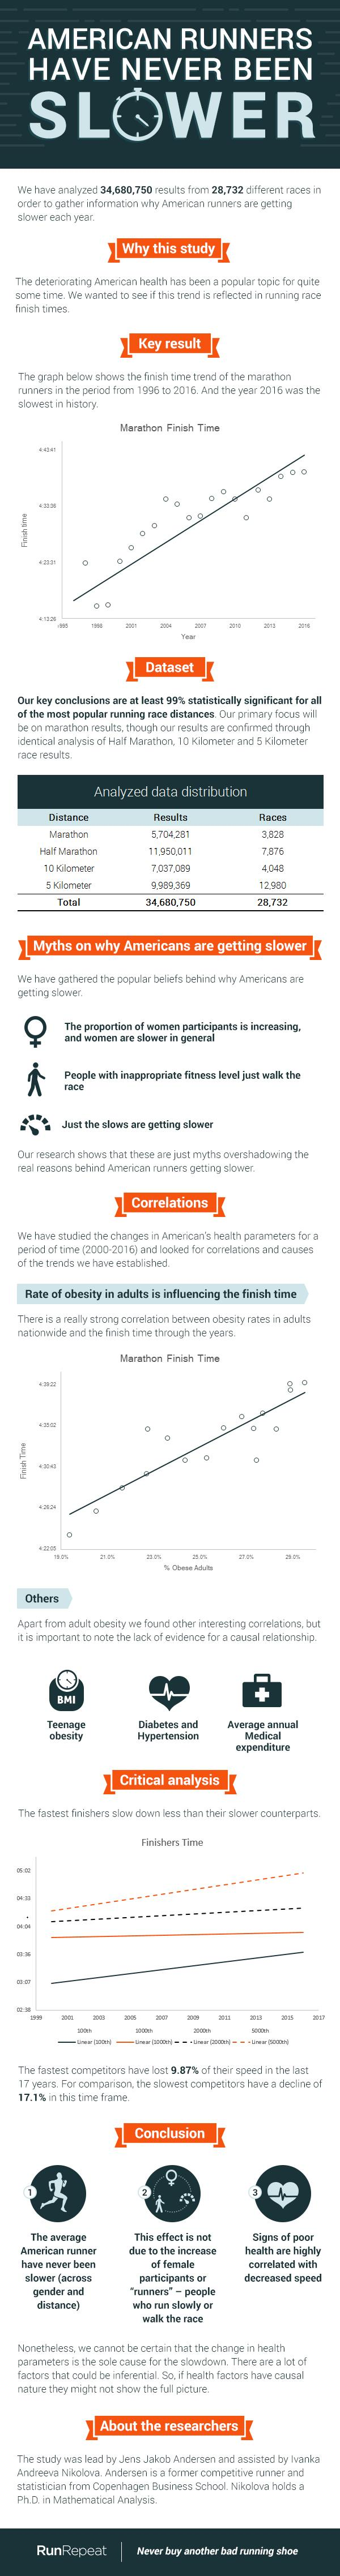 infographic - amnericans have never been slowera